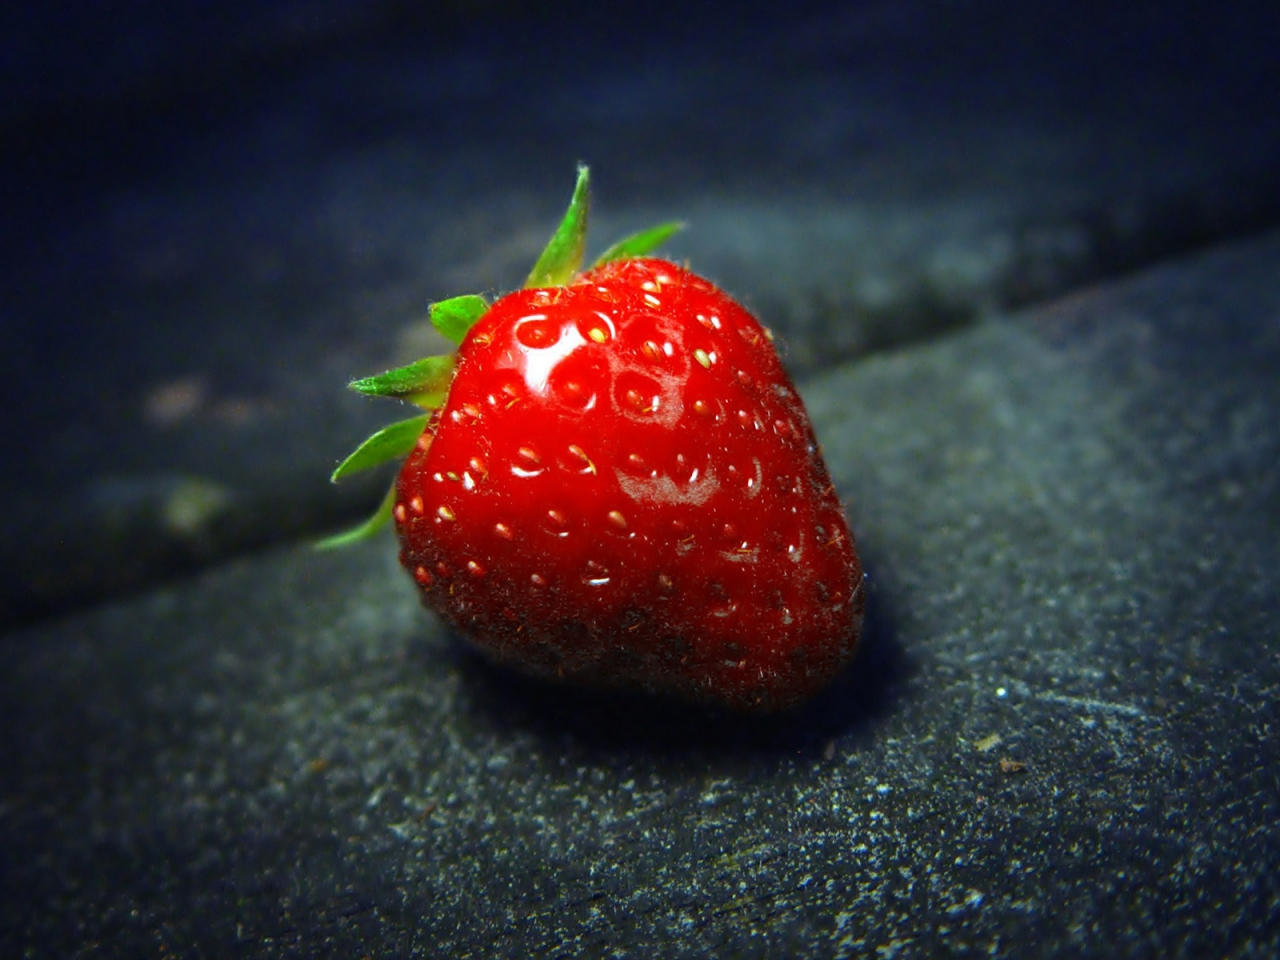 The Strawberry for 1280 x 960 resolution